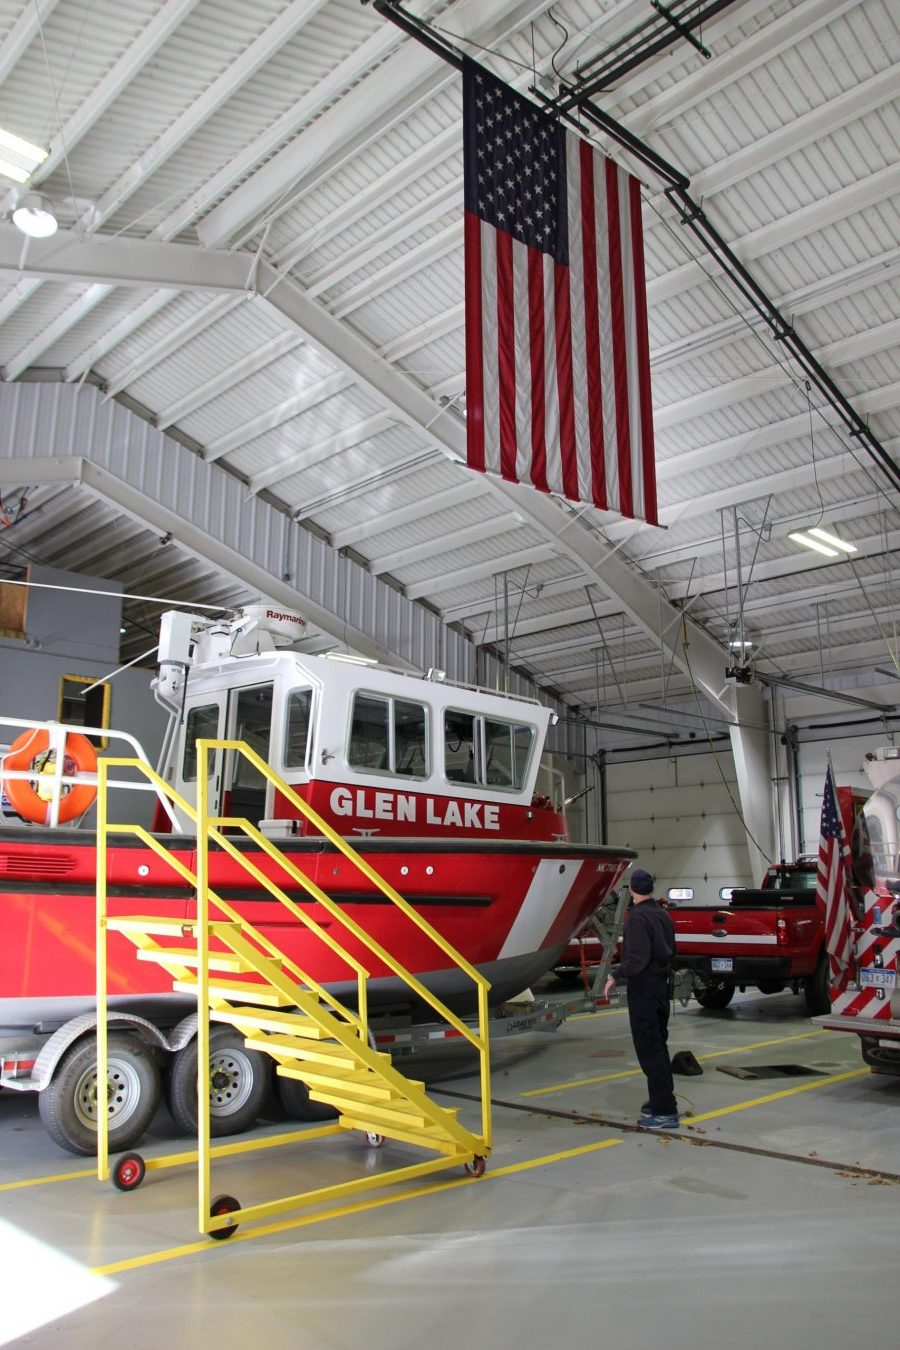 inside of station, vehicles parked, american flag haning from ceiling